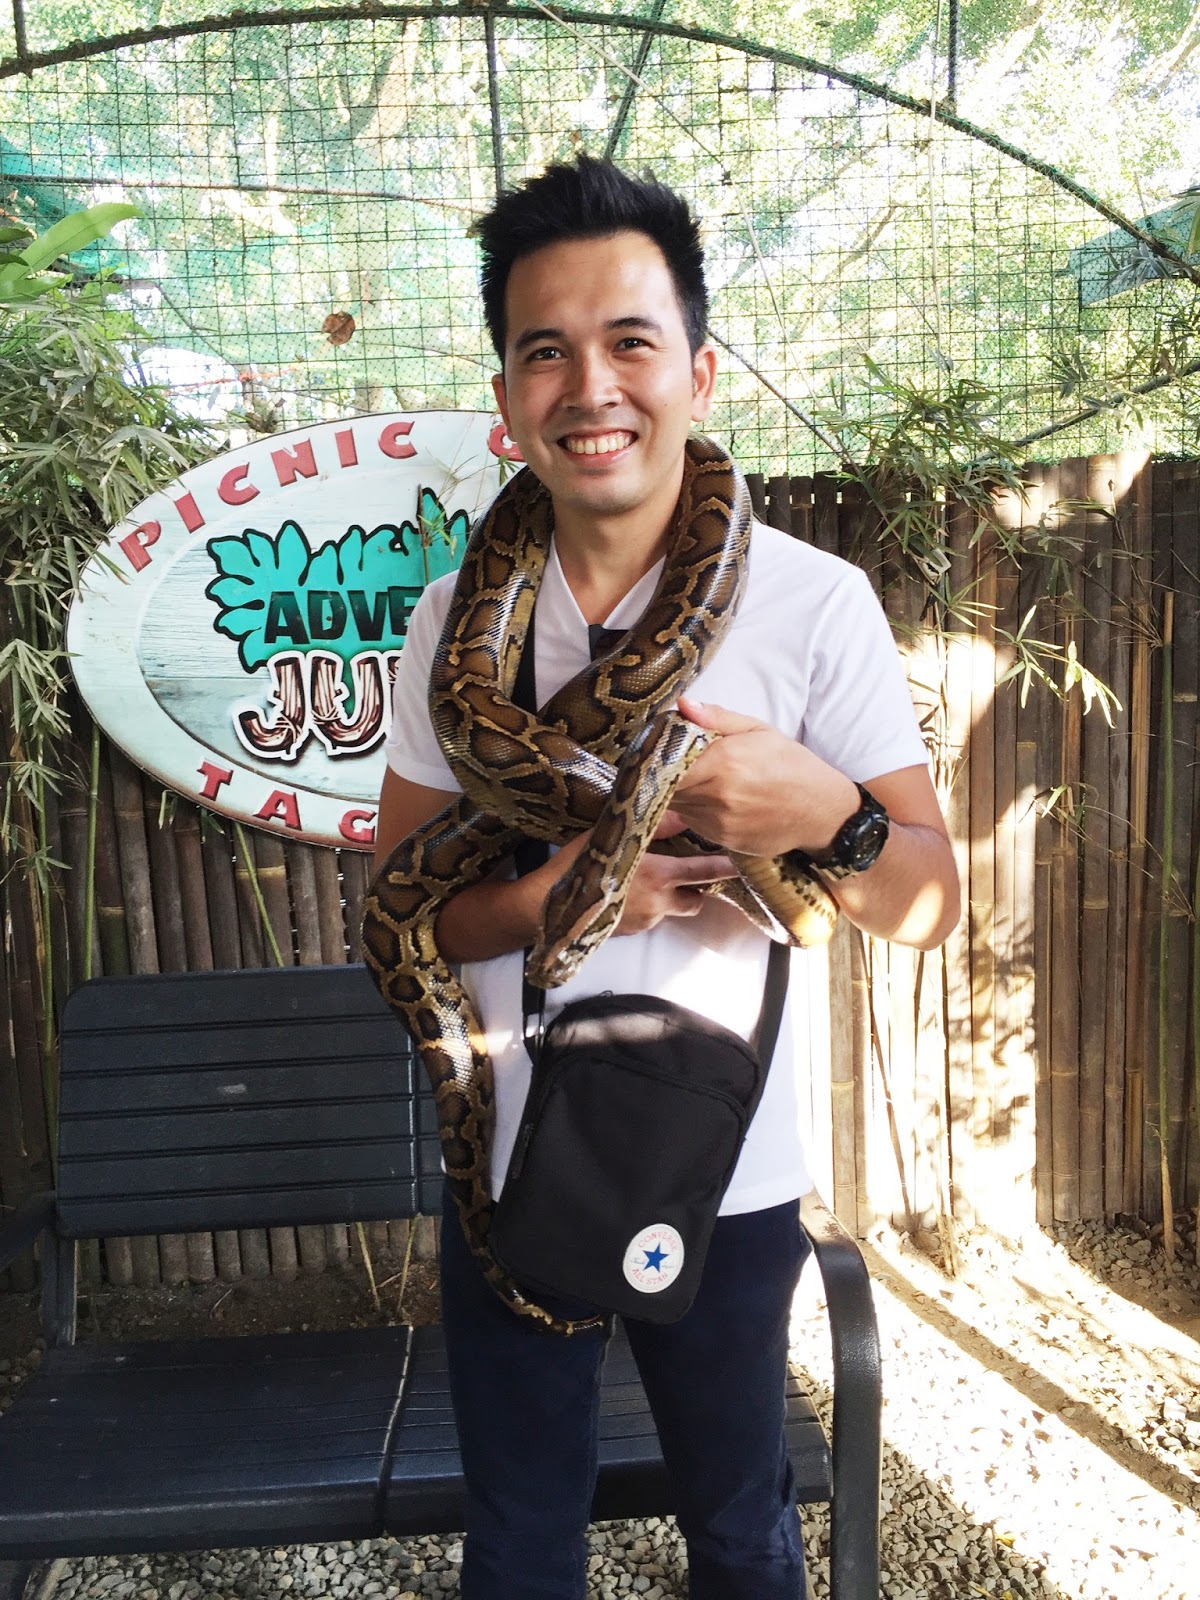 picture taking with snakes